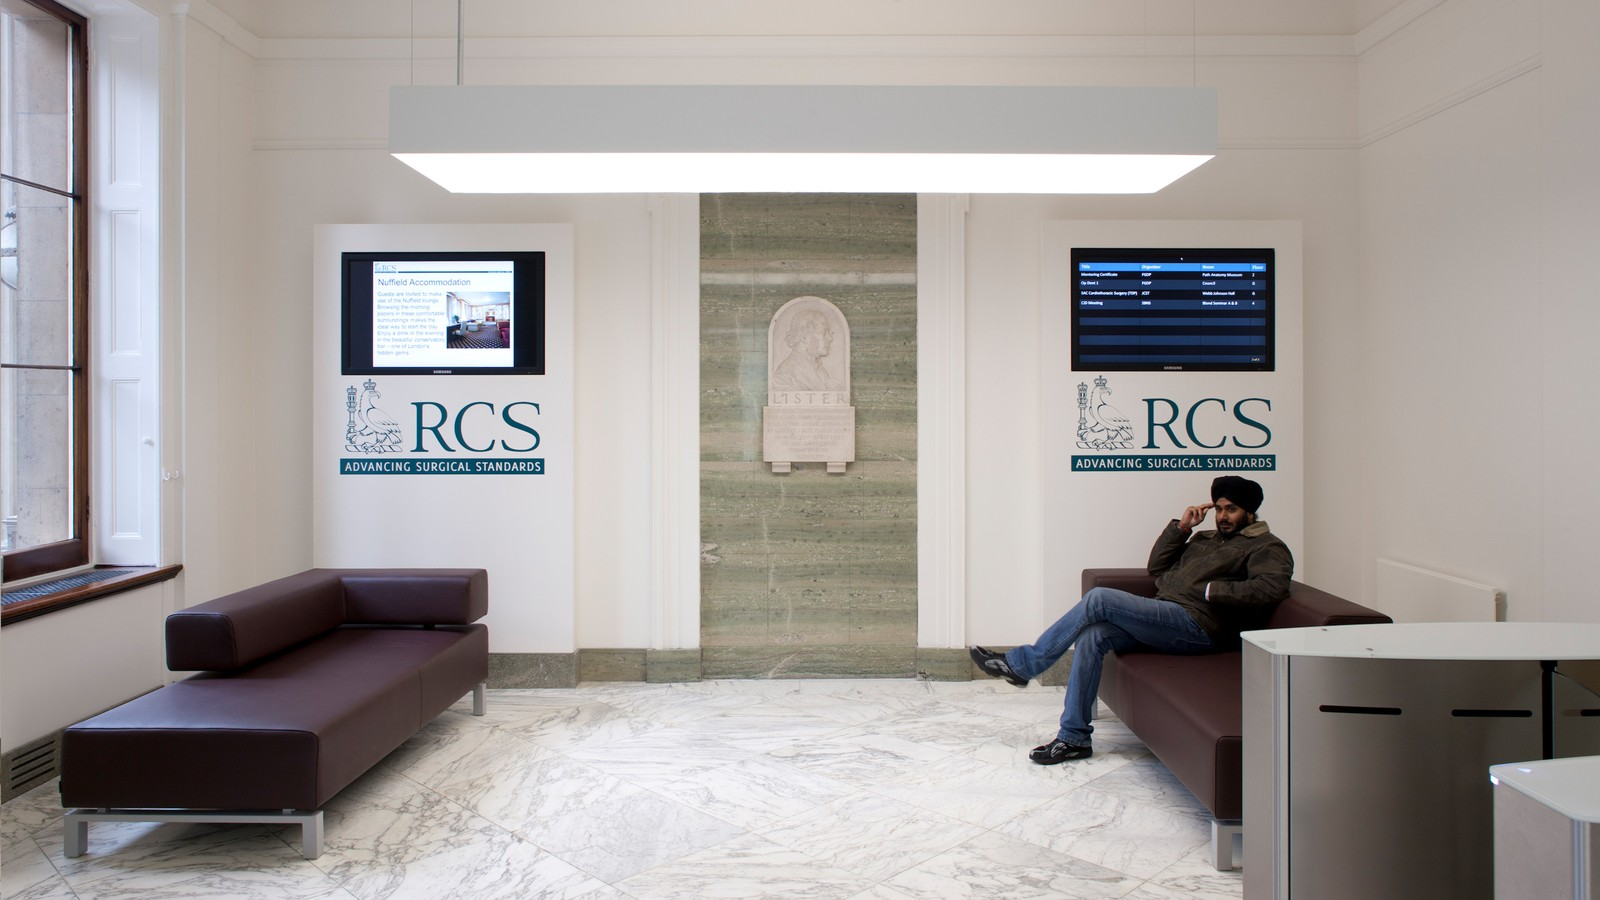 The Royal College of Surgeons 5